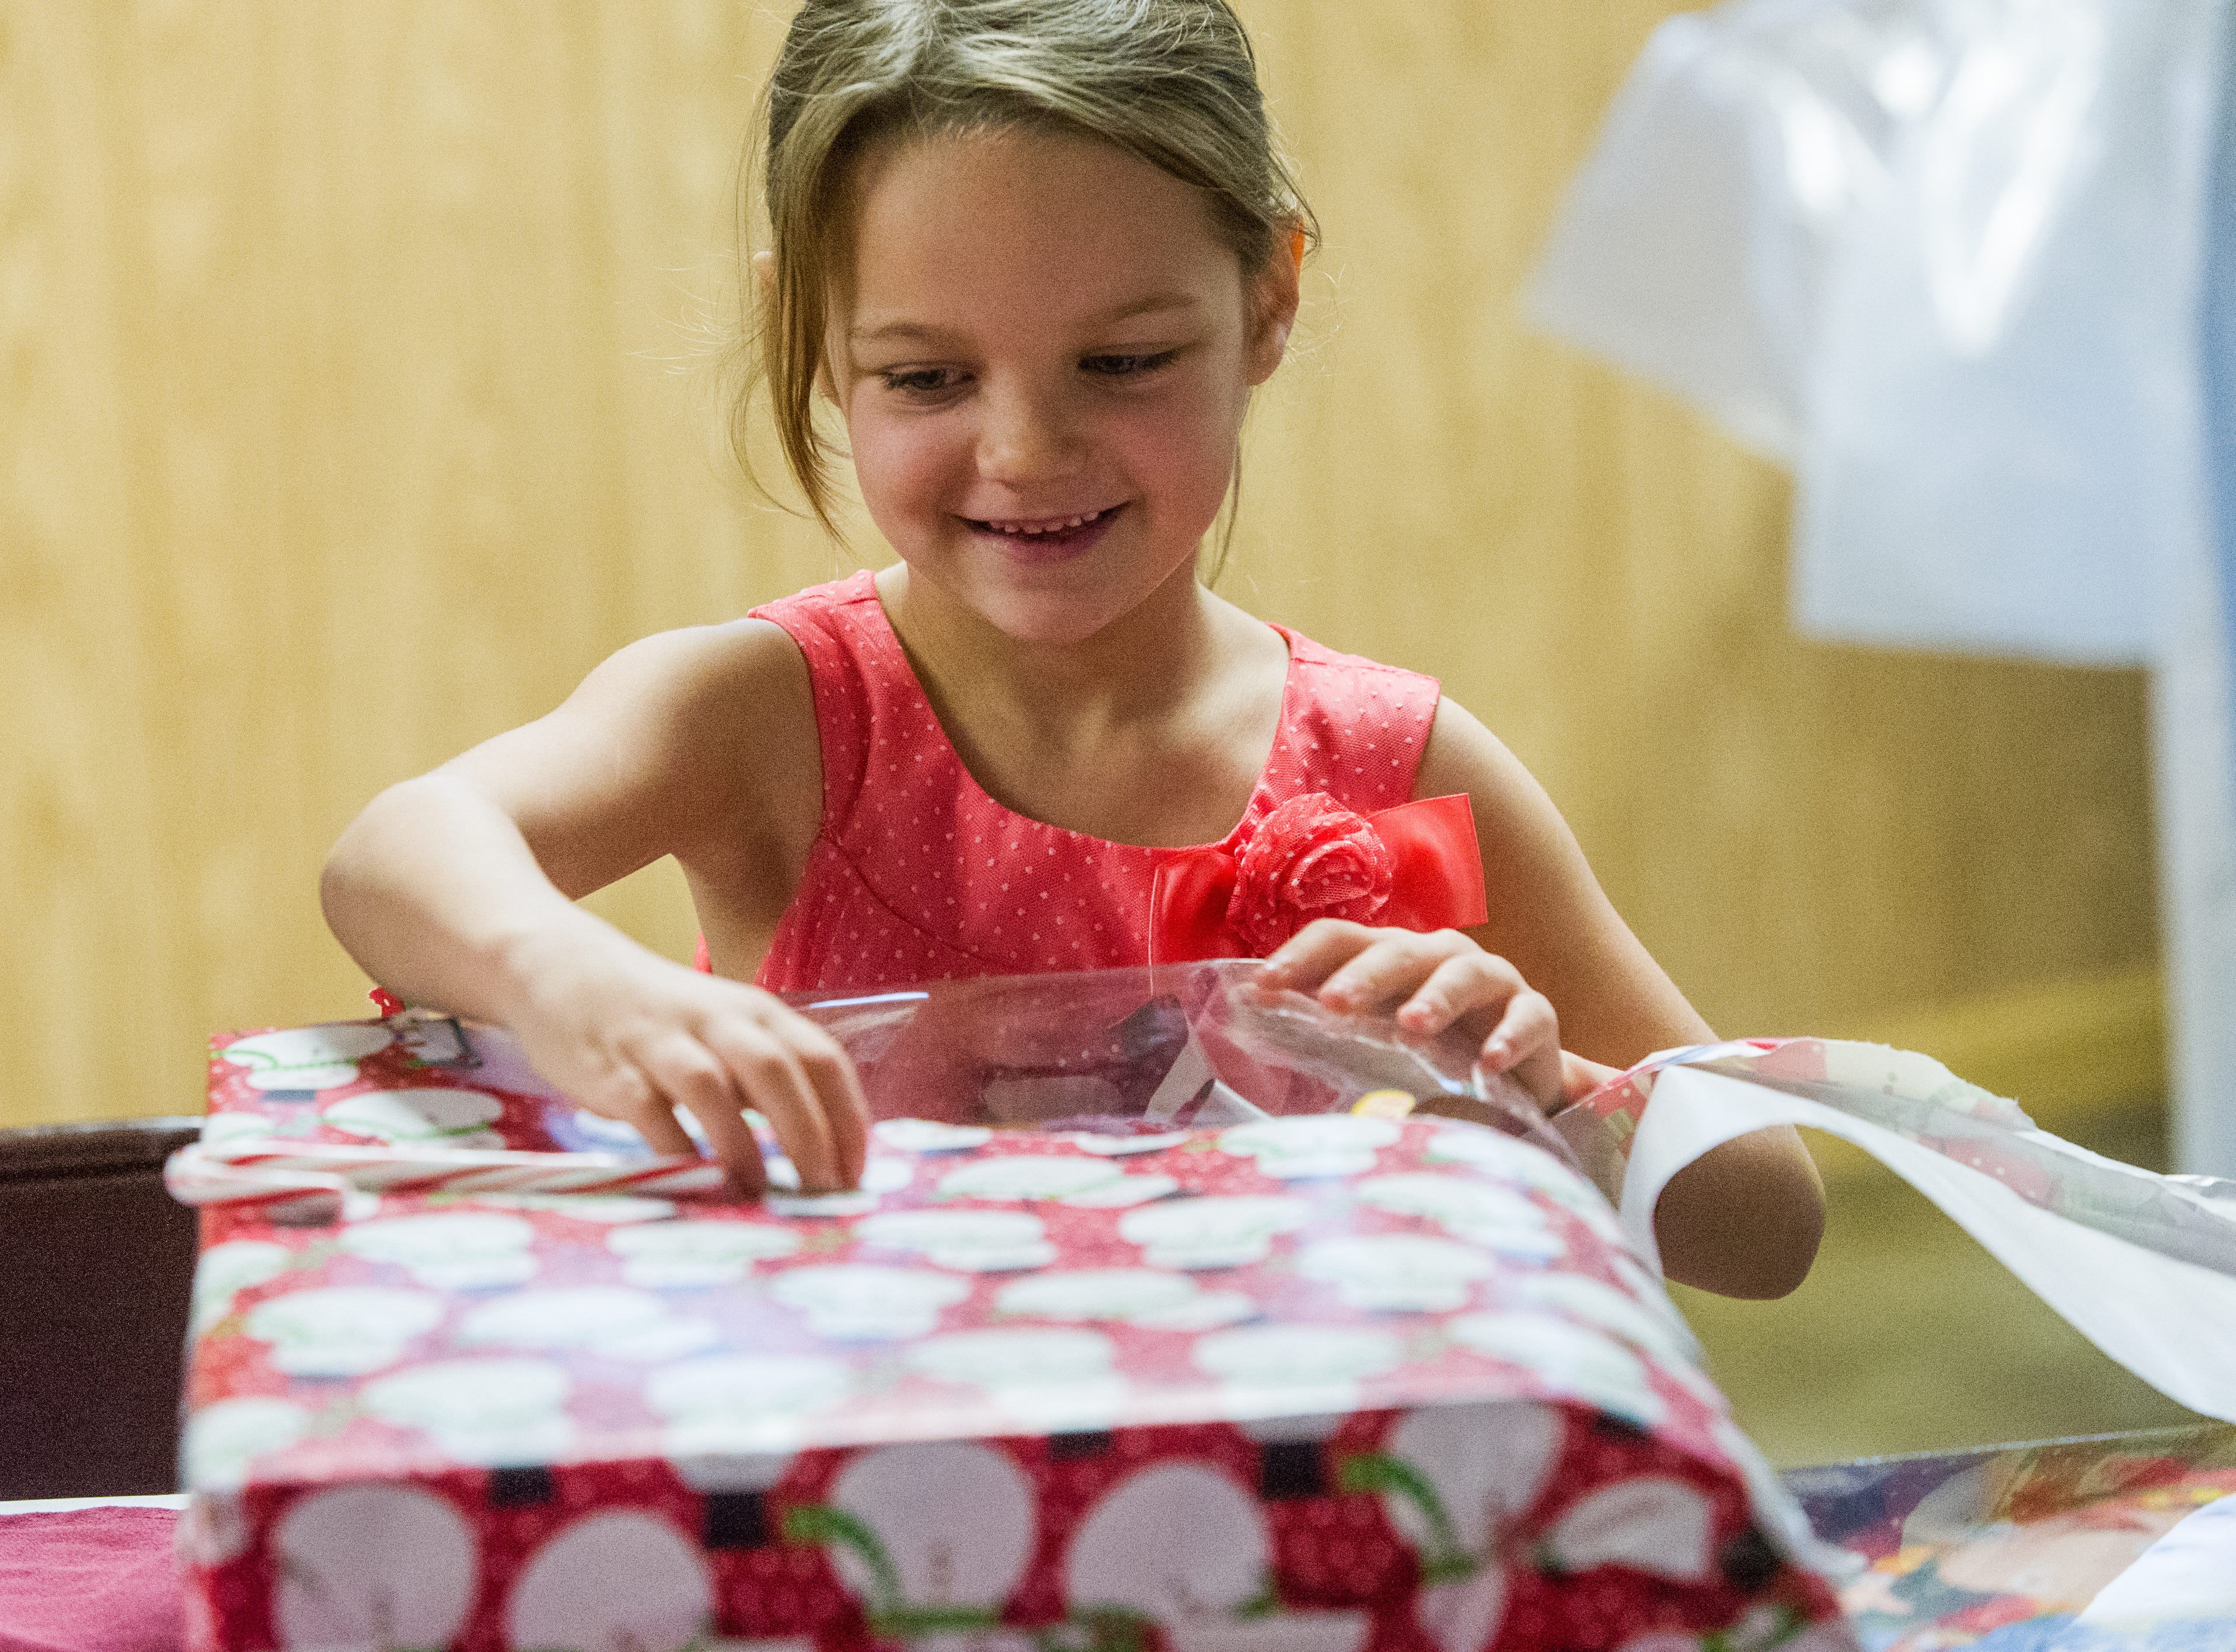 Five year-old Anna Newbold is all smiles as she unwraps one of her gifts from Santa at the annual Kids Christmas Party at the FOP Lodge in Evansville, Ind. Saturday, Dec. 12, 2015.